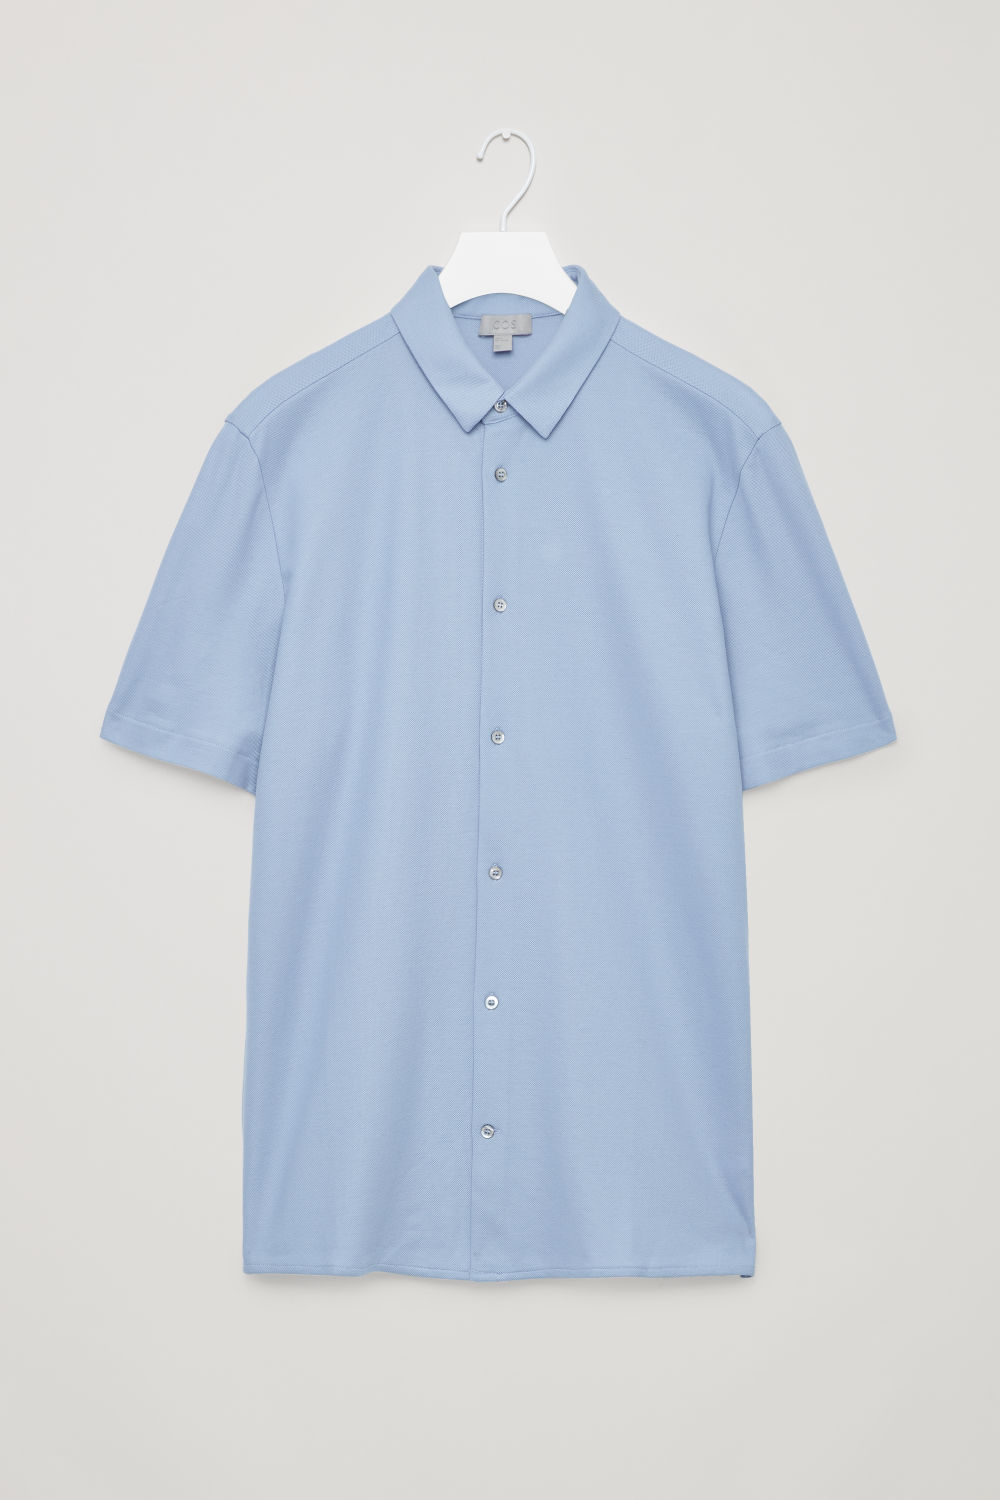 SHORT-SLEEVED PIQUE SHIRT